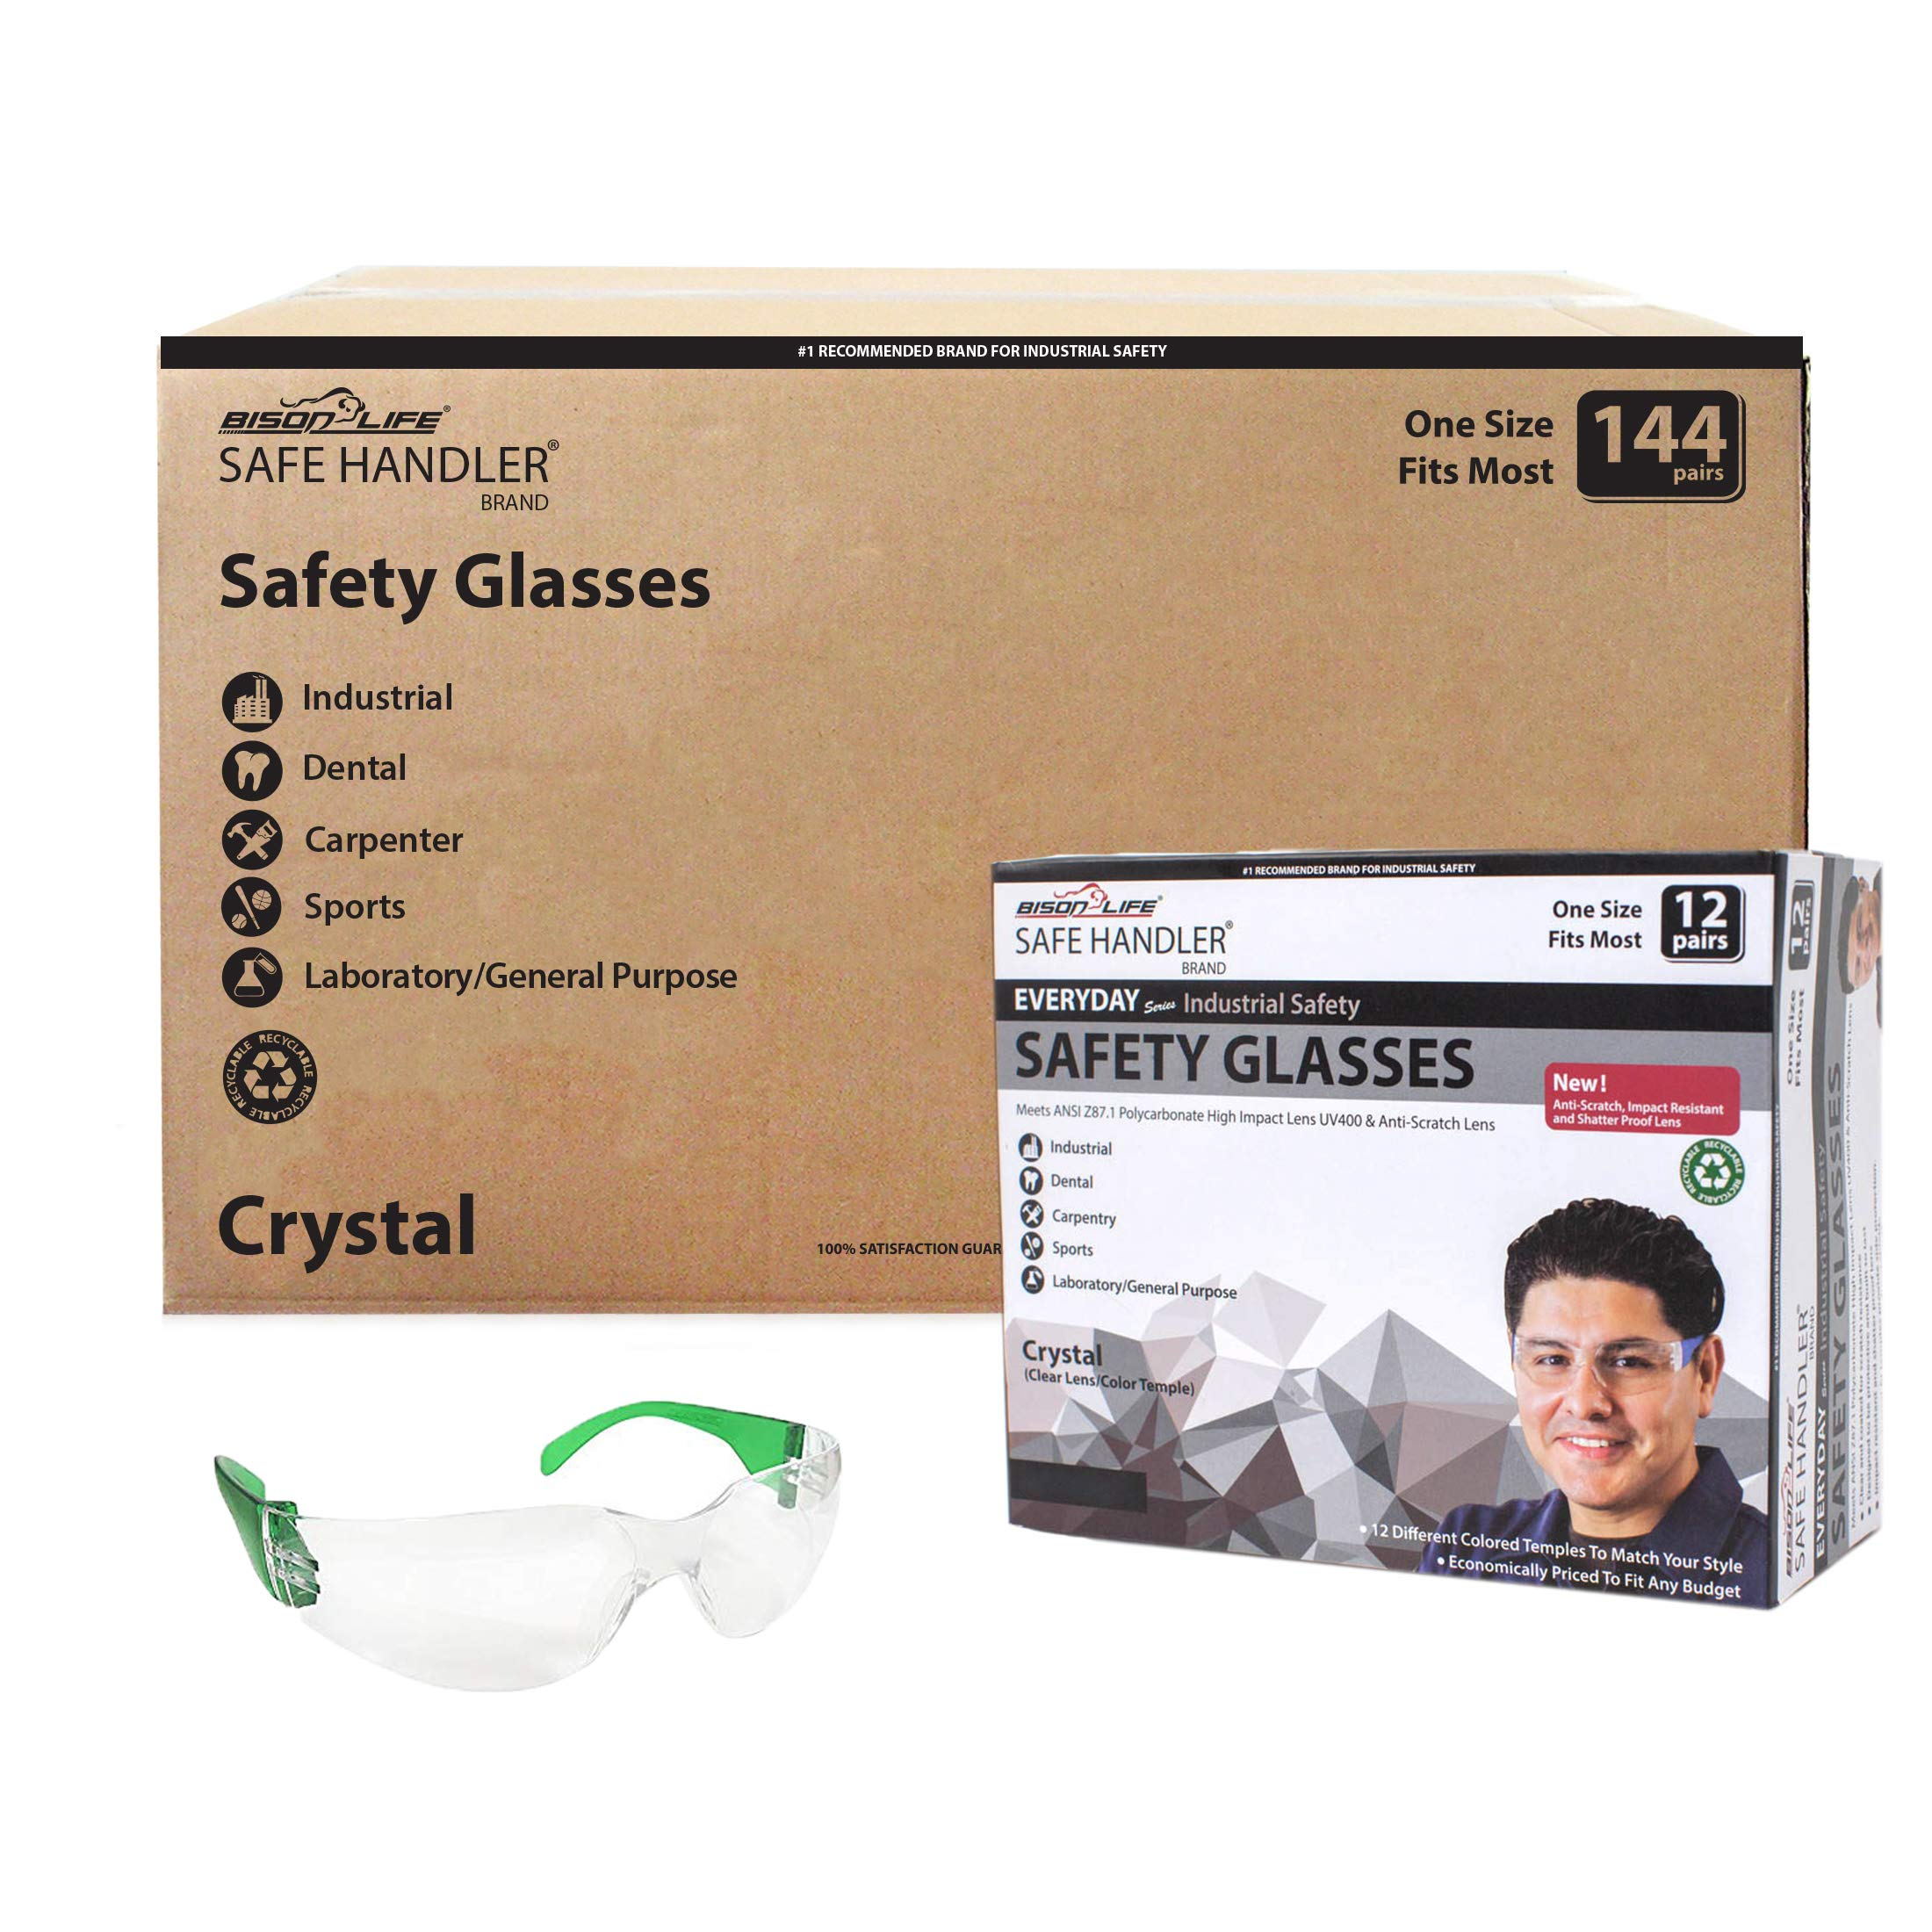 SAFE HANDLER Protective Safety Glasses, Clear Polycarbonate Impact and Ballistic Resistant Lens - Green Temple (Case of 12 Boxes, 144 Pairs Total) by Safe Handler